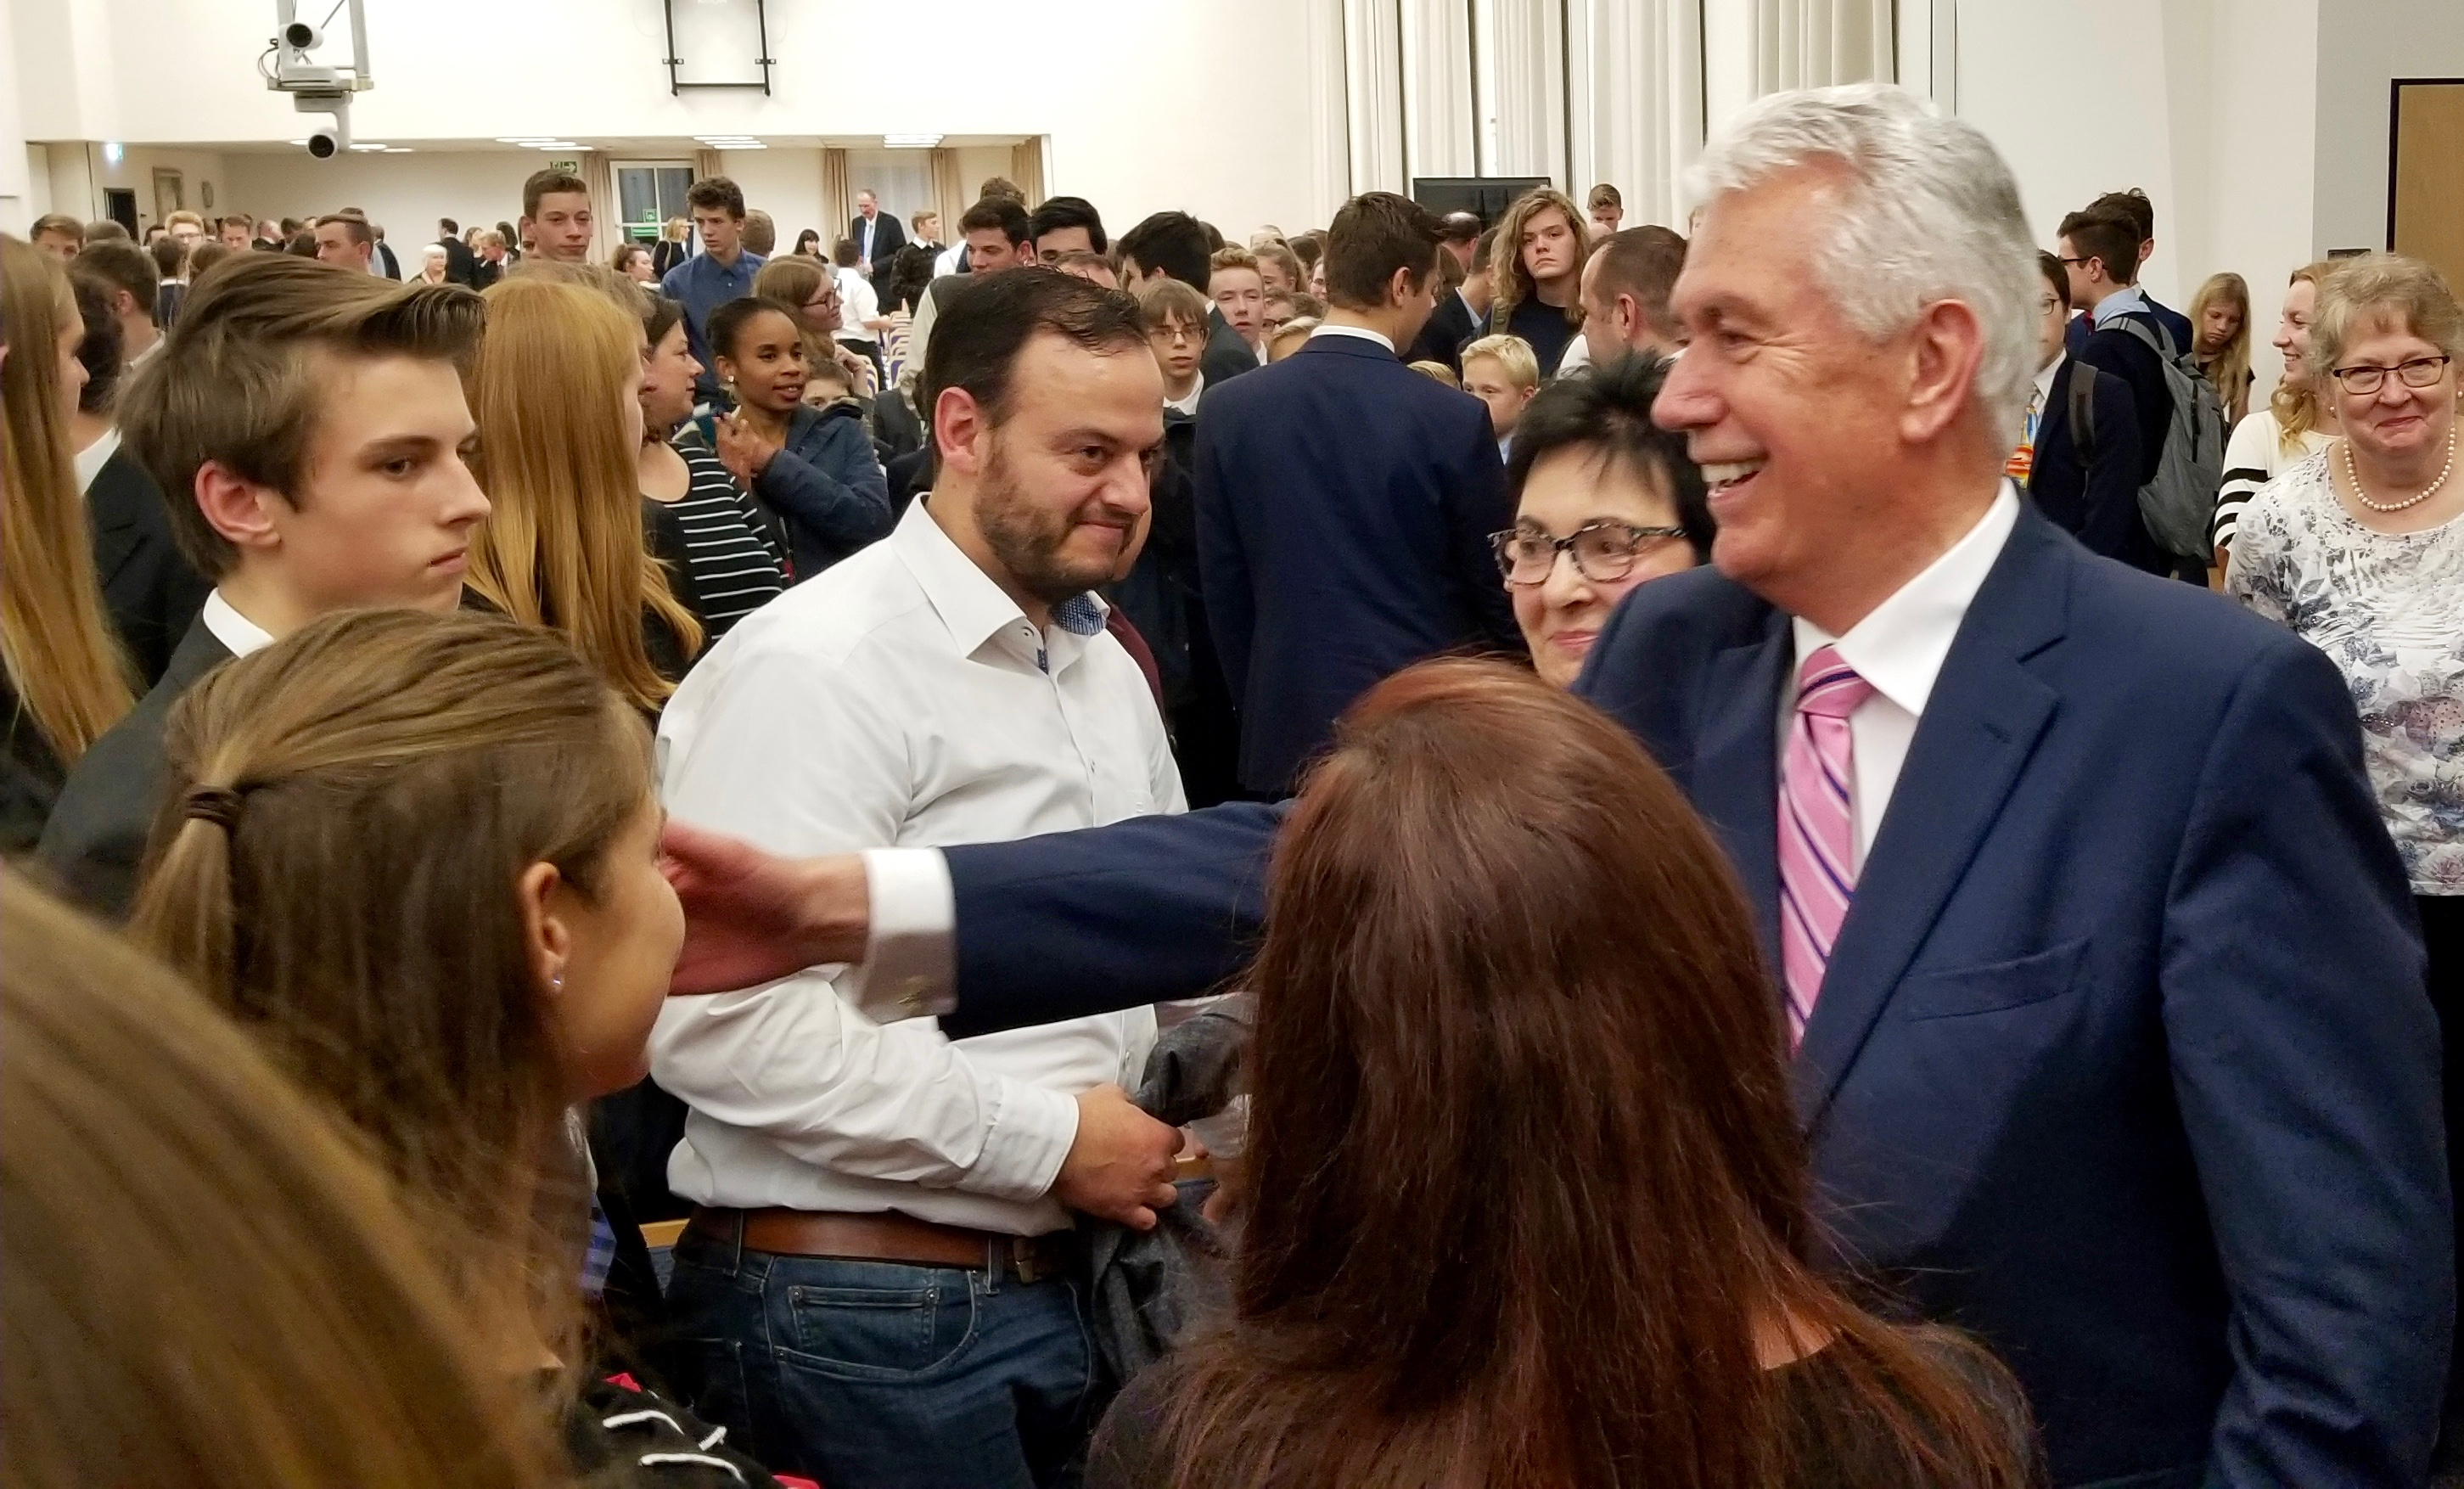 Elder Dieter F. Uchtdorf of the Quorum of the Twelve Apostles reaches out as he and his wife, Sister Harriet Uchtdorf greet attendees after a youth devotional in Friedrichsdorf, Germany, on Saturday, Oct. 19, 2019, the eve of the Frankfurt Germany Temple rededication.